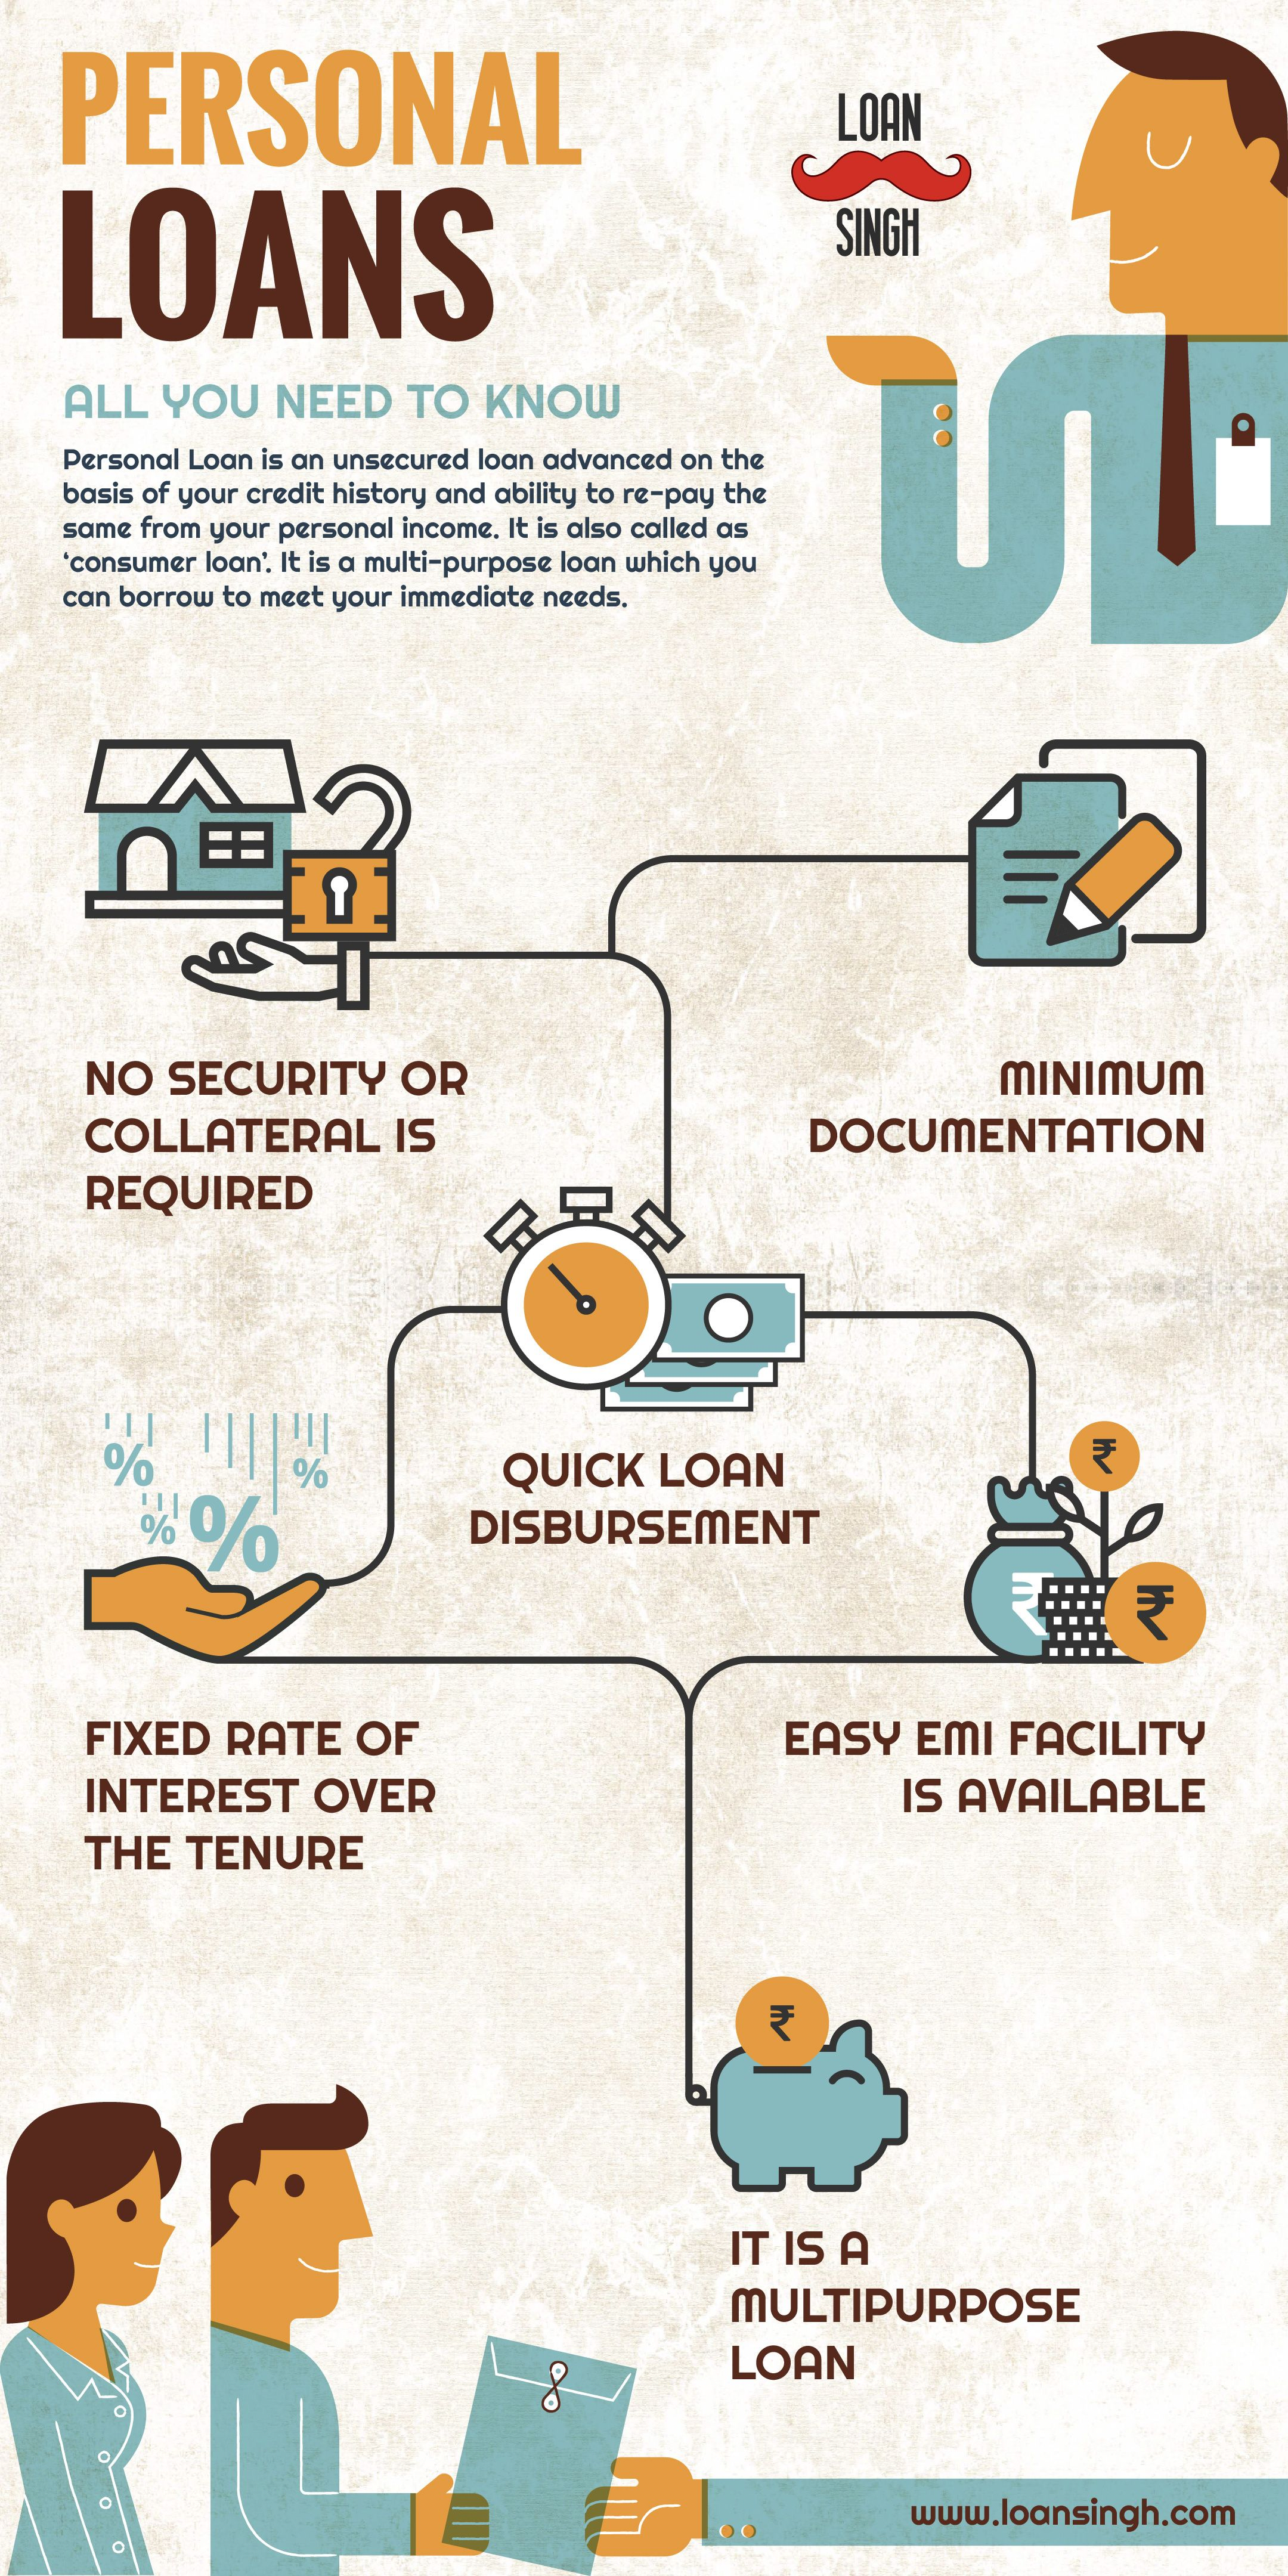 What Is A Personal Loan Apply For One By Clicking Www Loansingh Com Getpersonalloan Html Read More At Loansingh Com Personal Loans Finance Blog Finance Loans